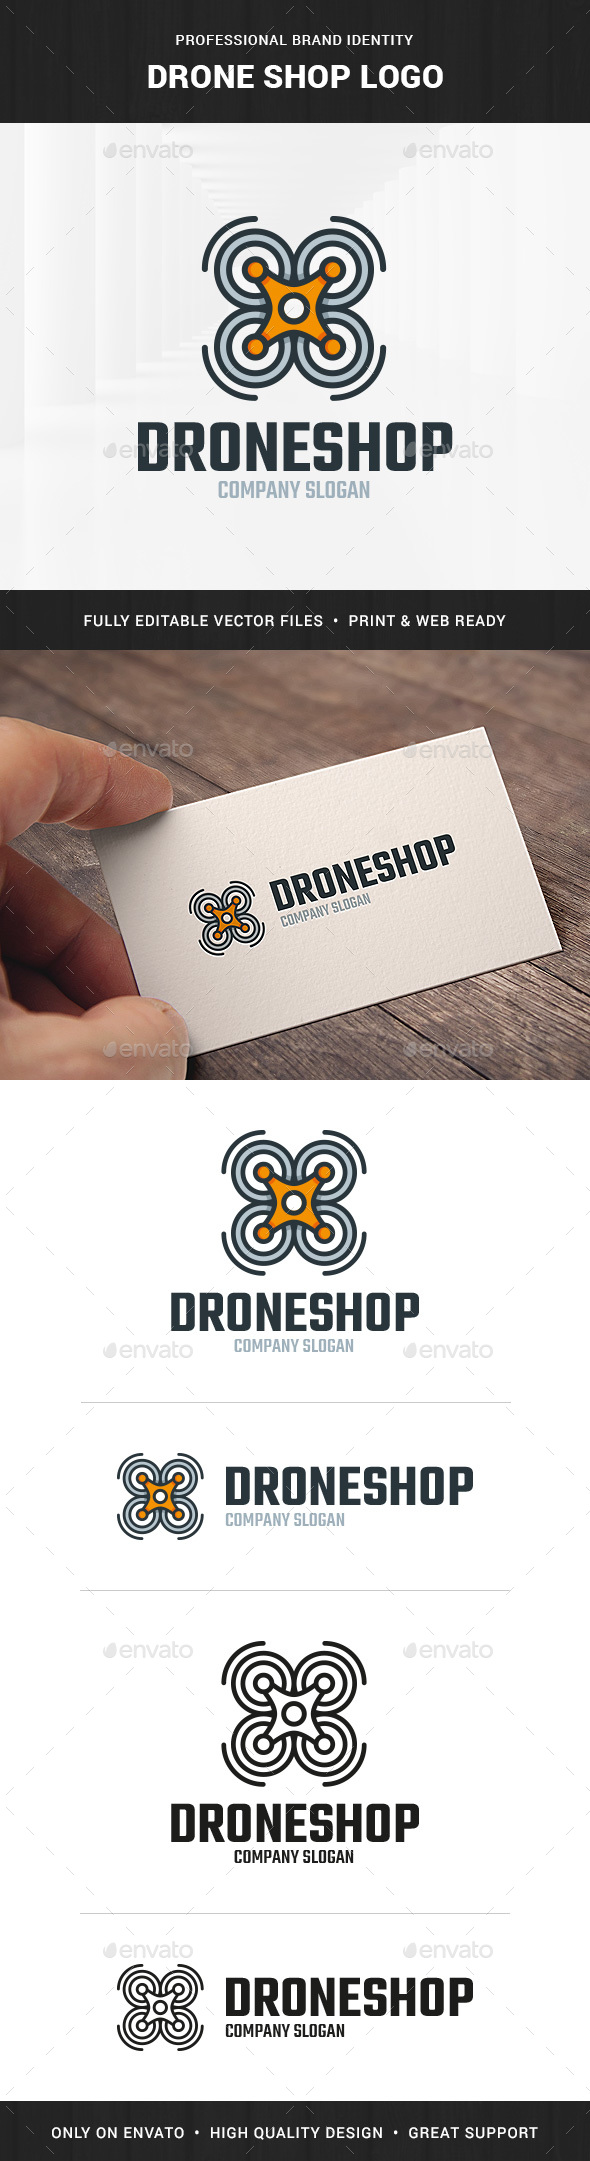 Drone Shop Logo Template - Objects Logo Templates